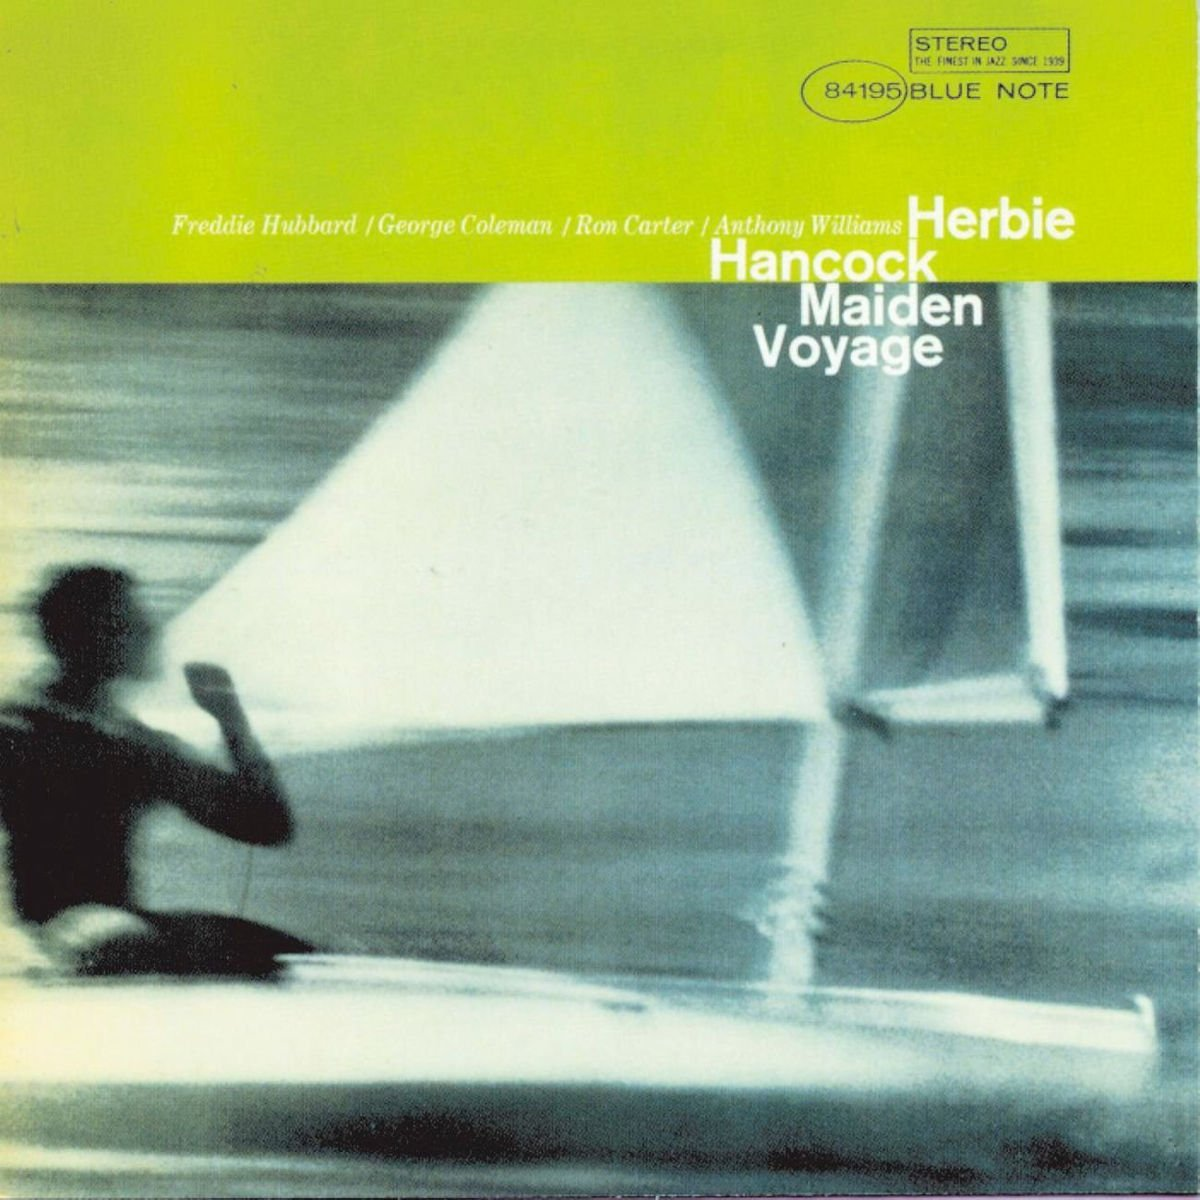 Herbie-Hancock-Maiden-Voyage-CD-cover